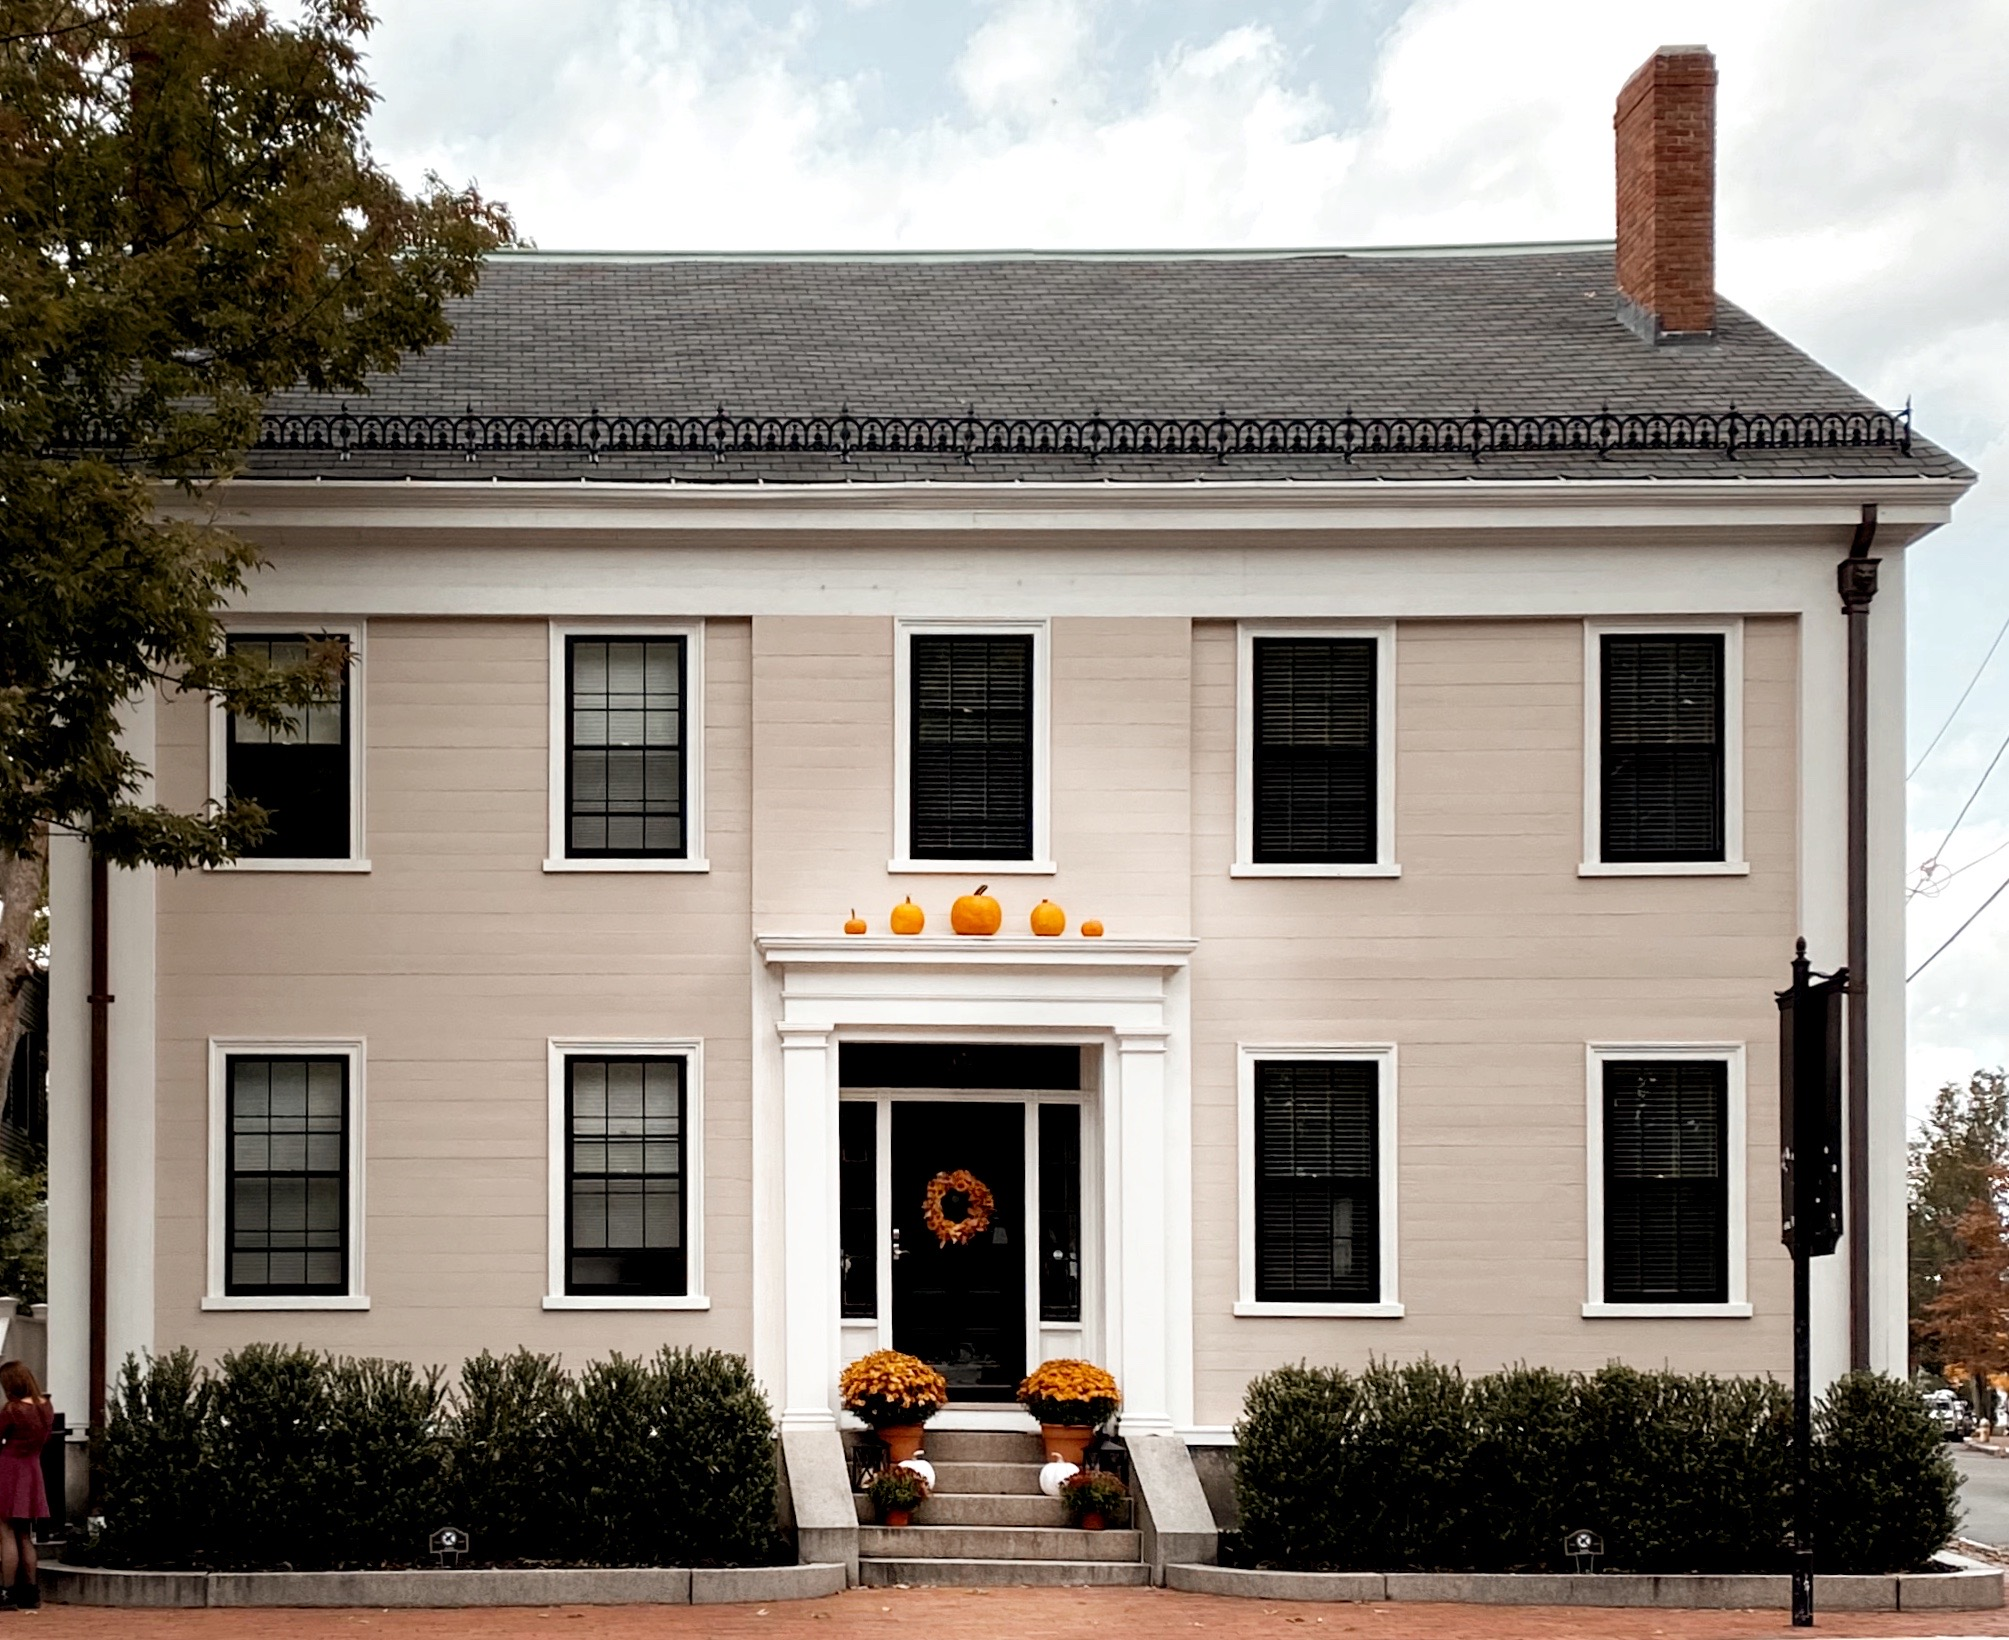 Home Decorated for Fall in Salem, Massachusetts | biblio-style.com